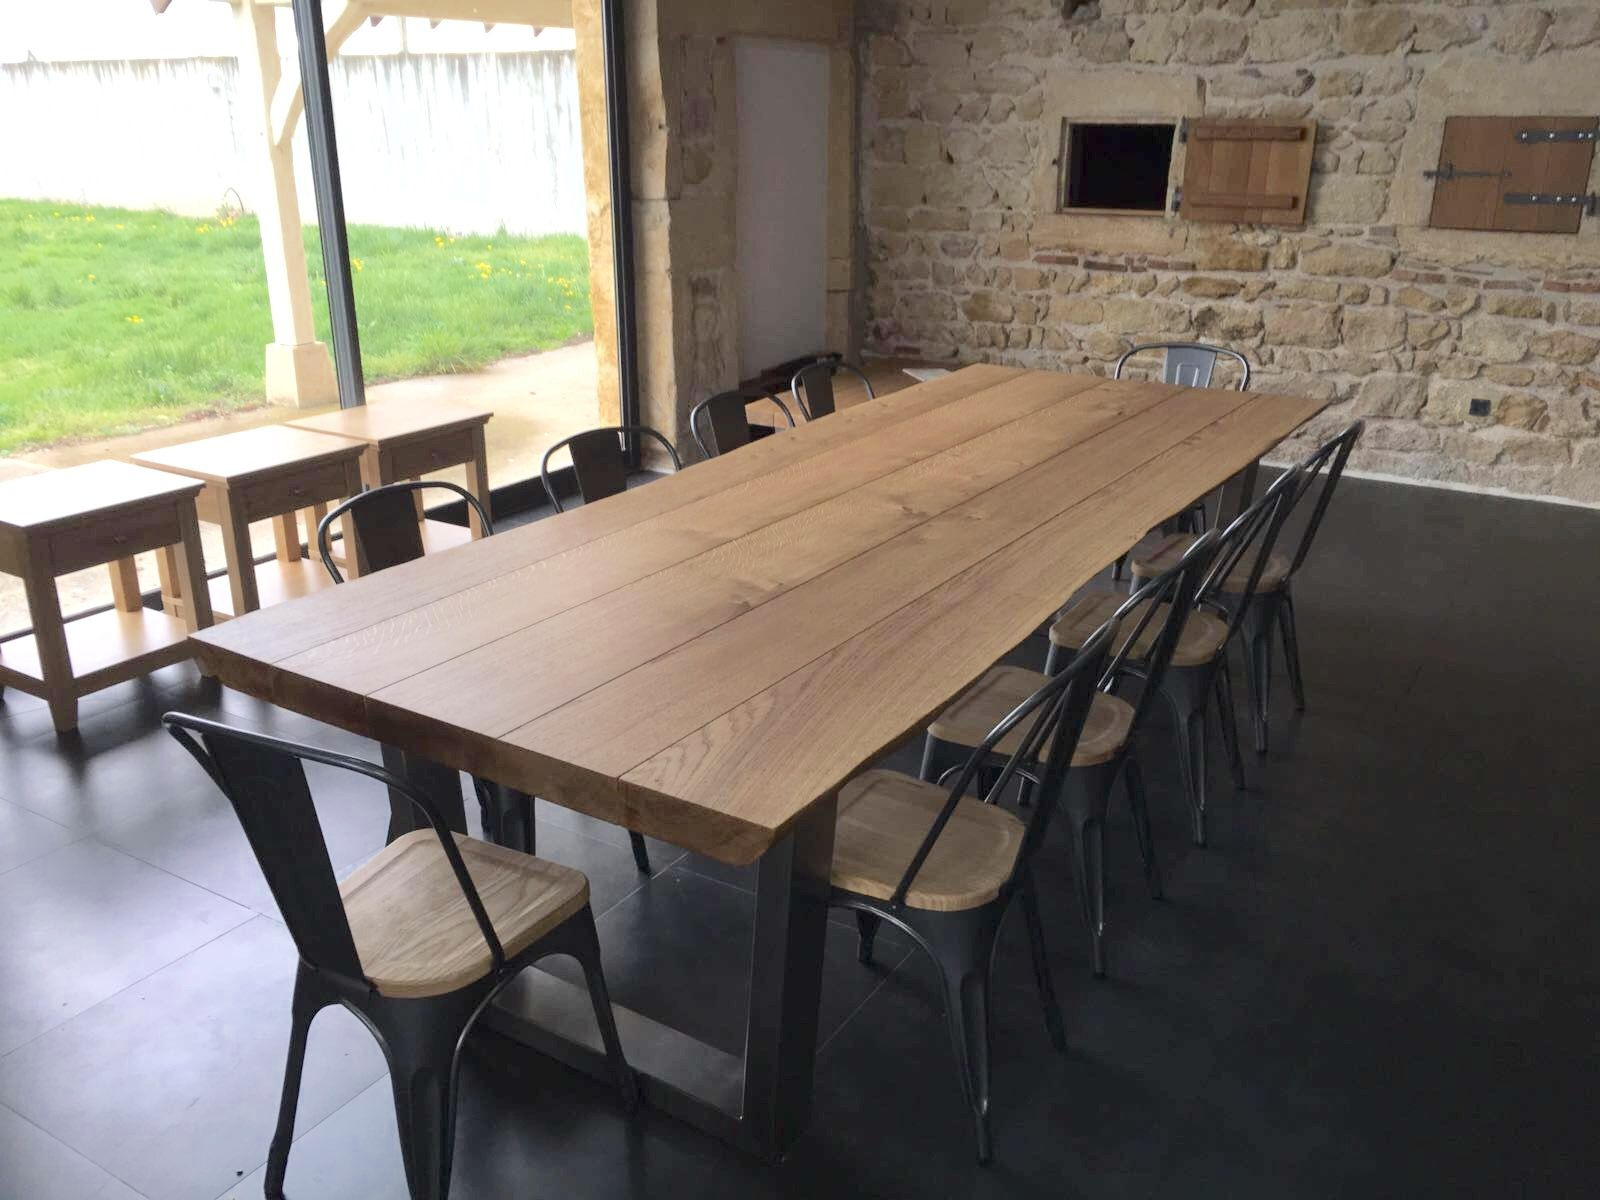 The Komodo 3000 X 1100 Dining Table With 65mm Thick Top